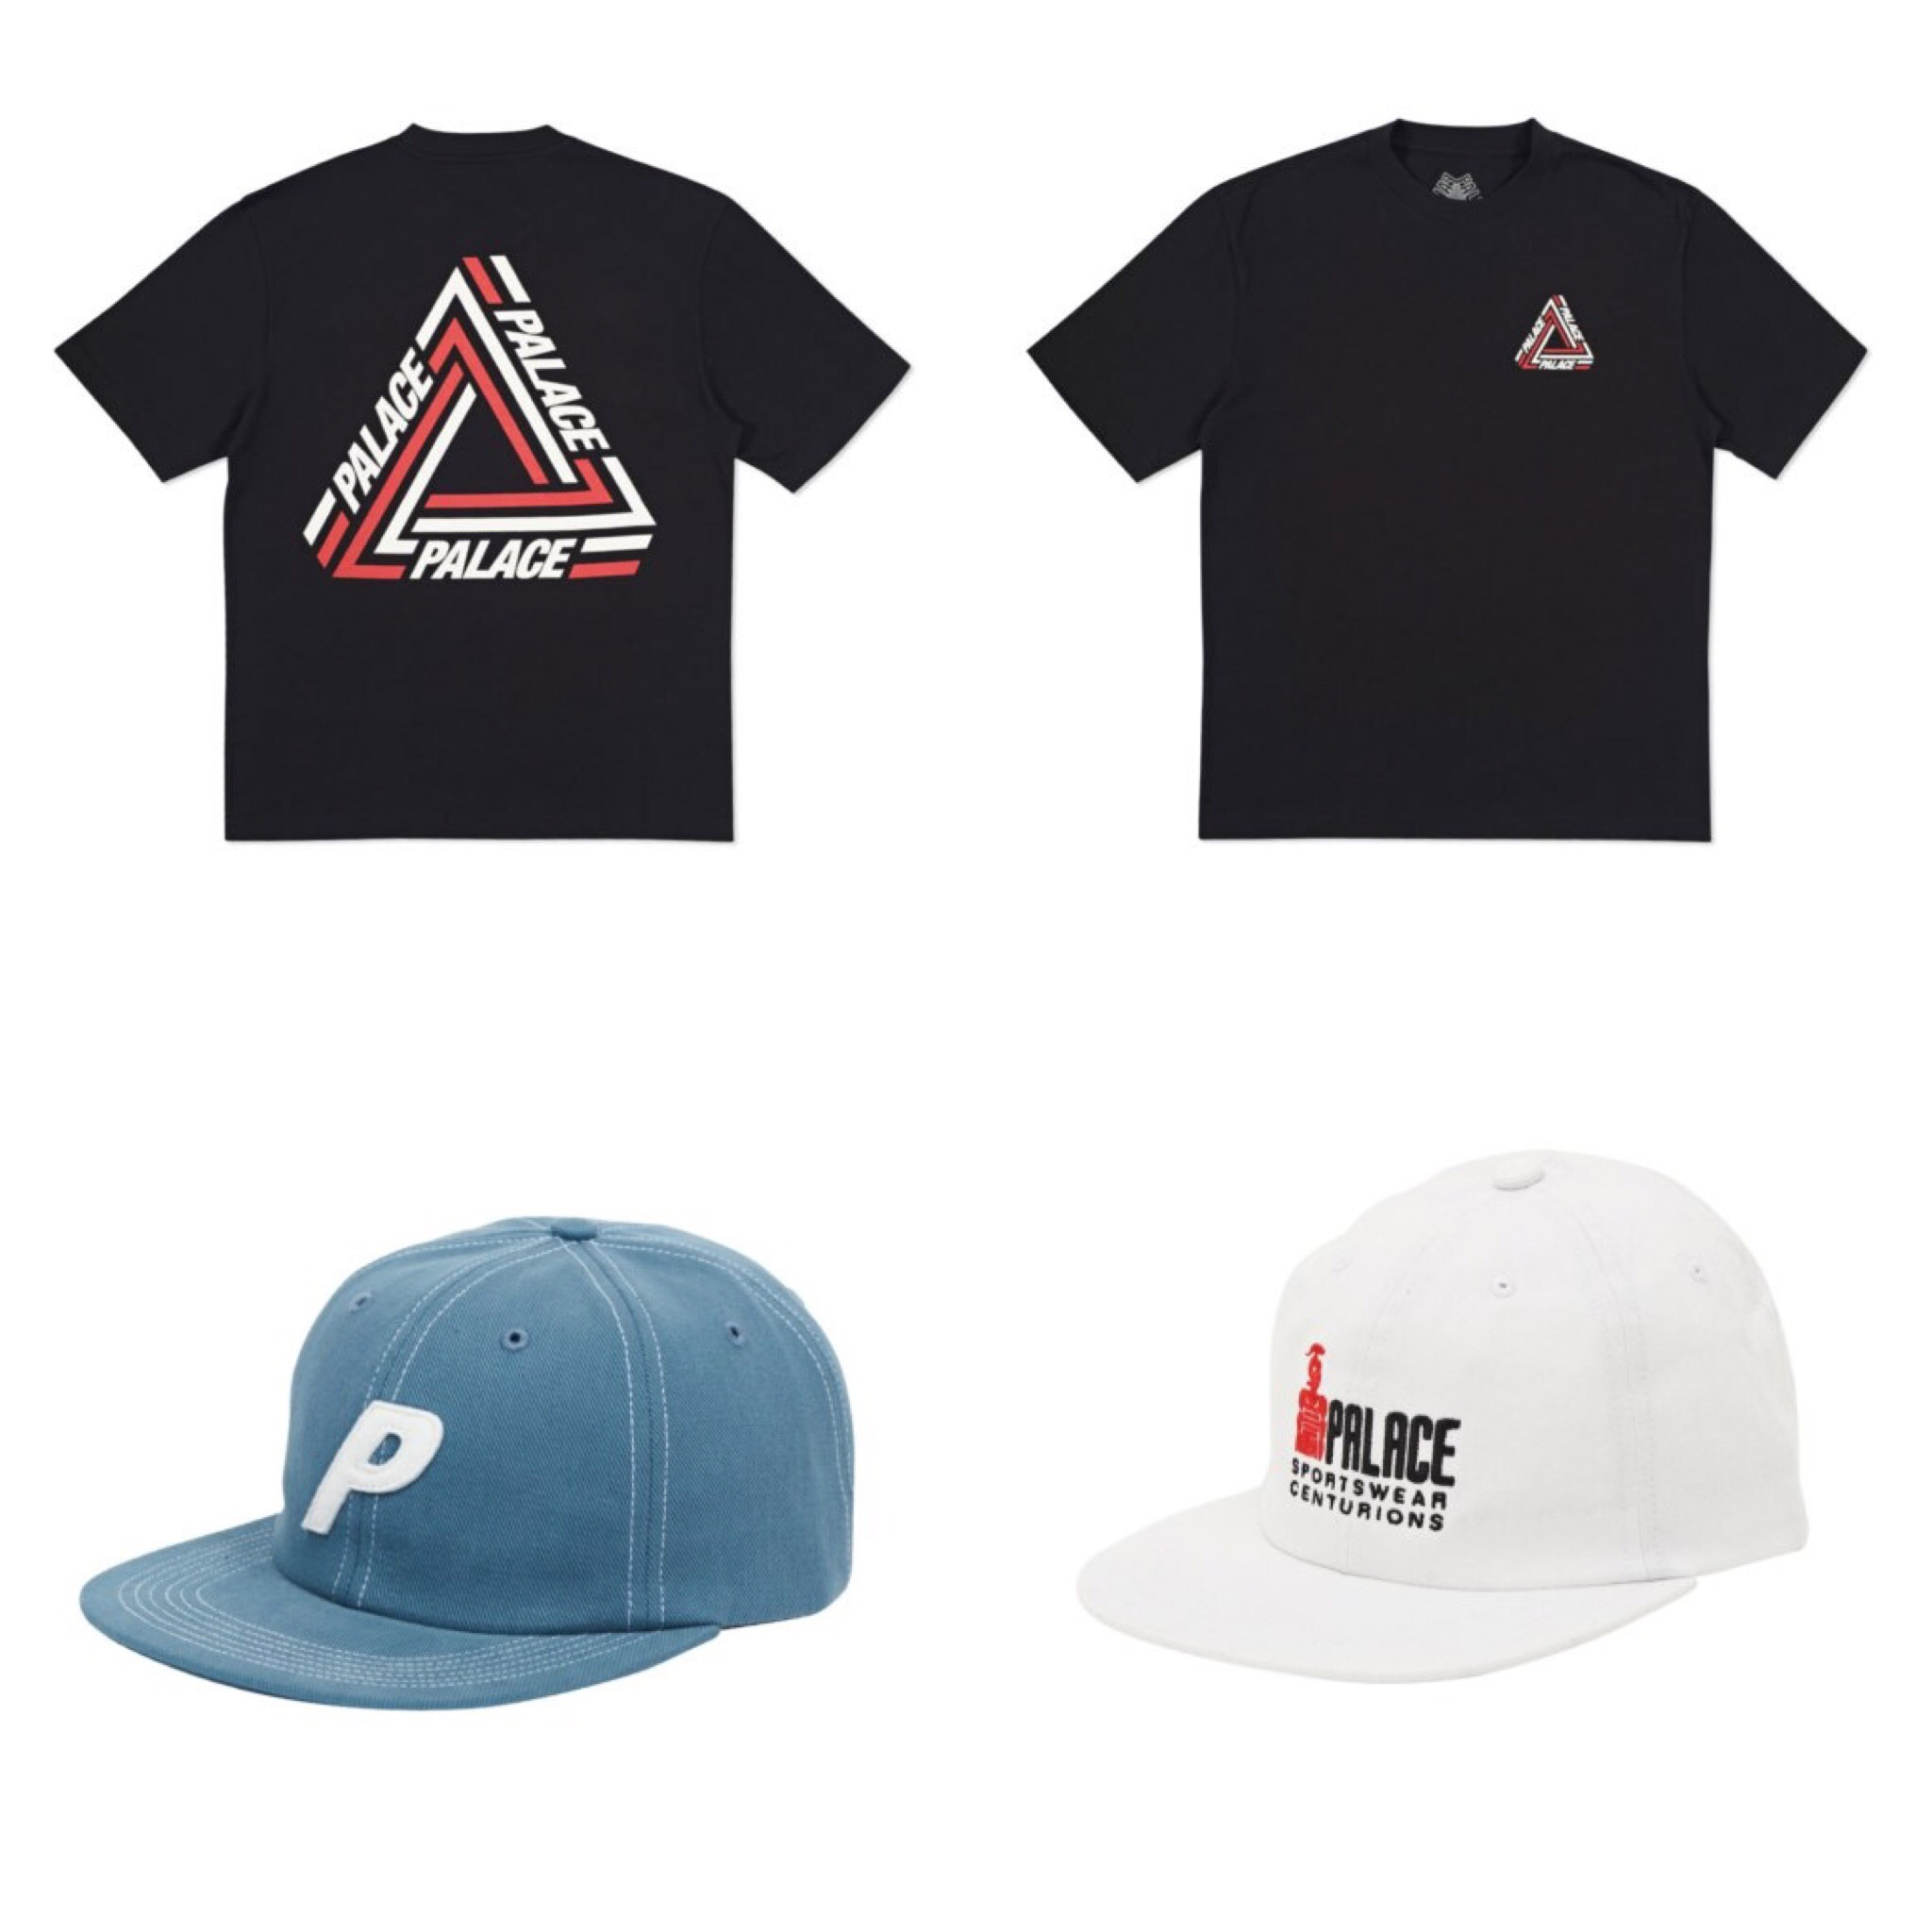 palace-2016aw-ultimo-collection-part2-20161216